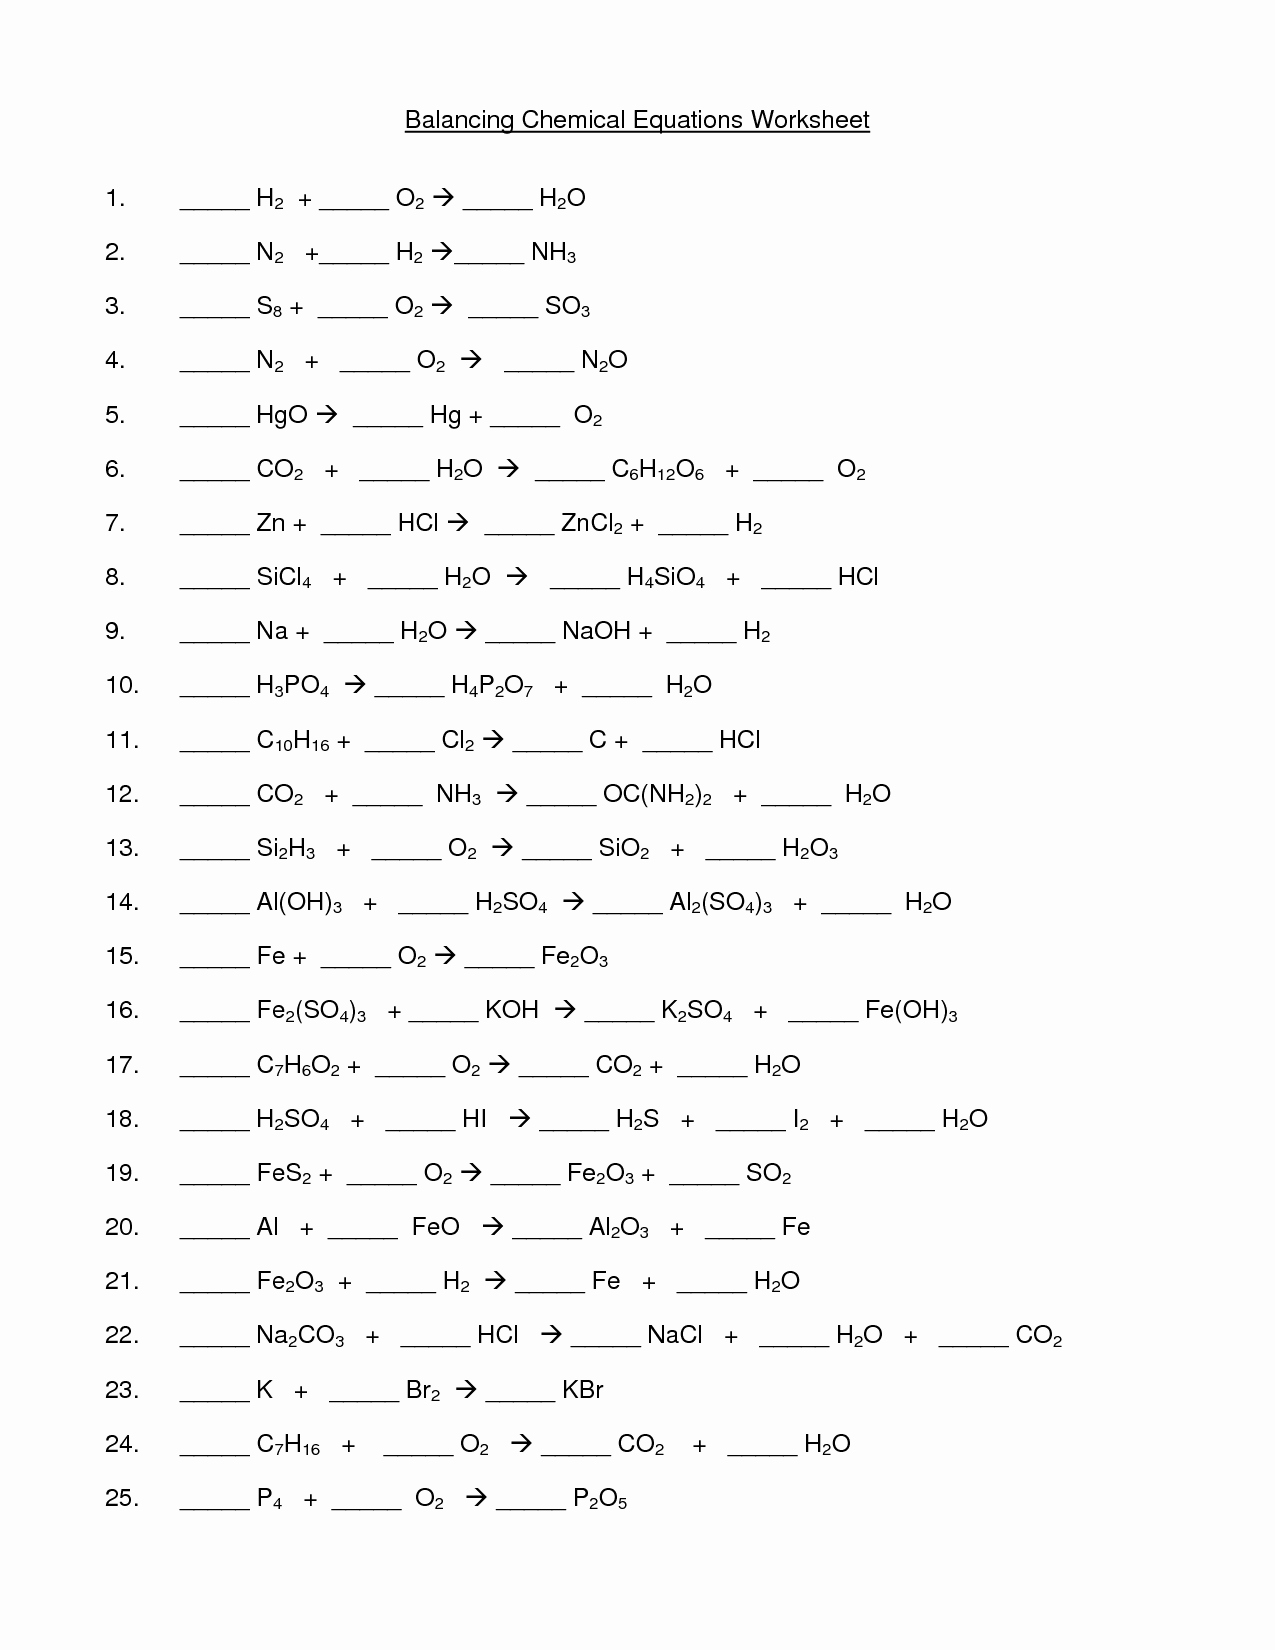 post balancing chemical equations worksheet pdf